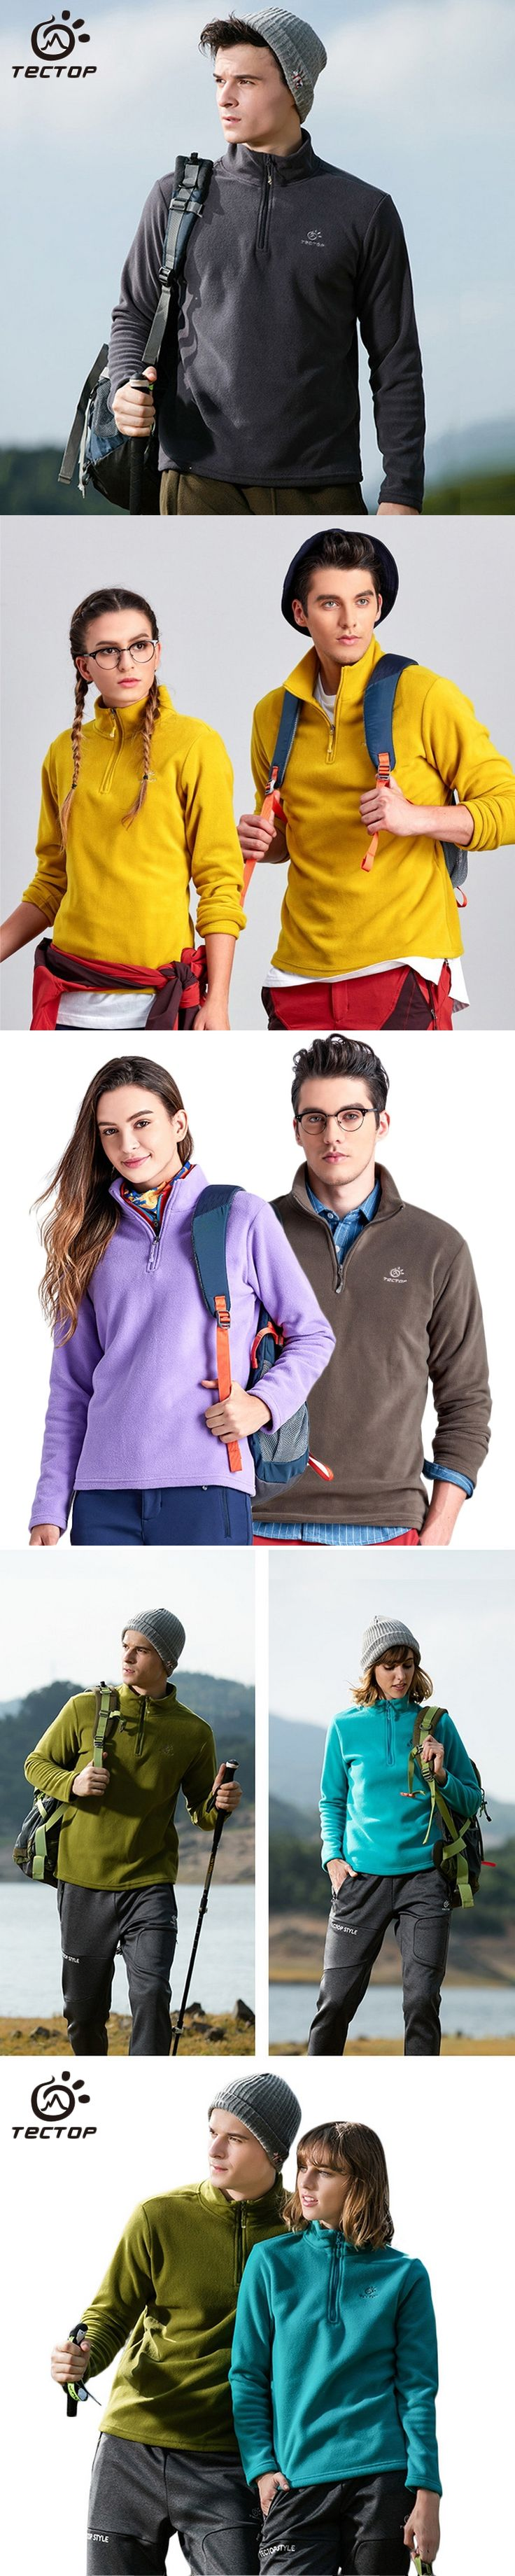 Tectop Hi-Q Spring Winter Warm Tech Fleece Outdoor Jacket Men Women Travel Trekking Sport Coat Camping Hiking Ski Jackets,AM056